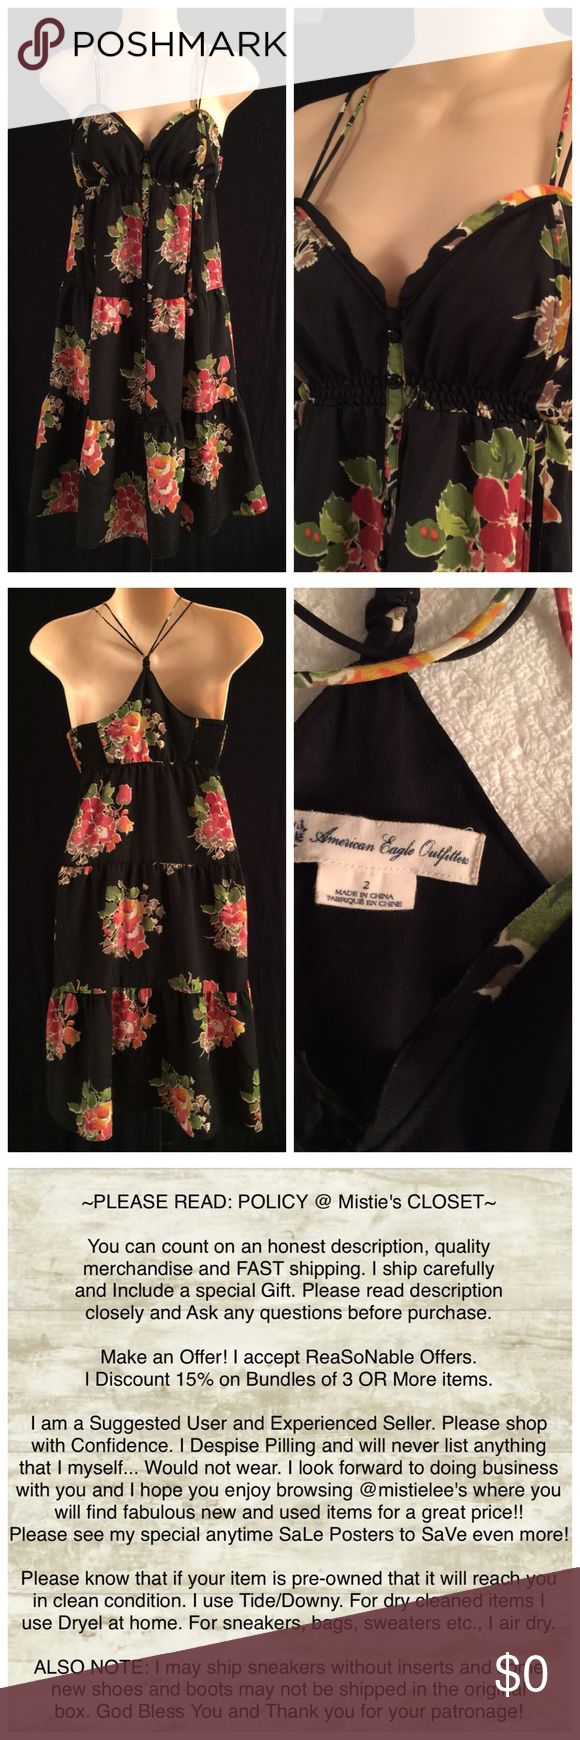 "AE Outfitters Silky Summer FuN Sun Dress Size  2 Made by: AE Outfitters Size 2 Black Floral w/Summer Corals Sweetheart Neckline with extra crude edge hem design Double Tiny Strap Racer Back Style Silky Polyester Button Front Empire Waist Drop Layer Sun Dress. Back has Elastic Sides for a perfect fit. Chest and back are lined. Measurements: Underarm to Underarm 16""+Stretch Elastic Underarm to Hem Length 27"". Pre-Loved: Very Sweet! No signs of wear. Excellent condition. Thank you for browsing…"